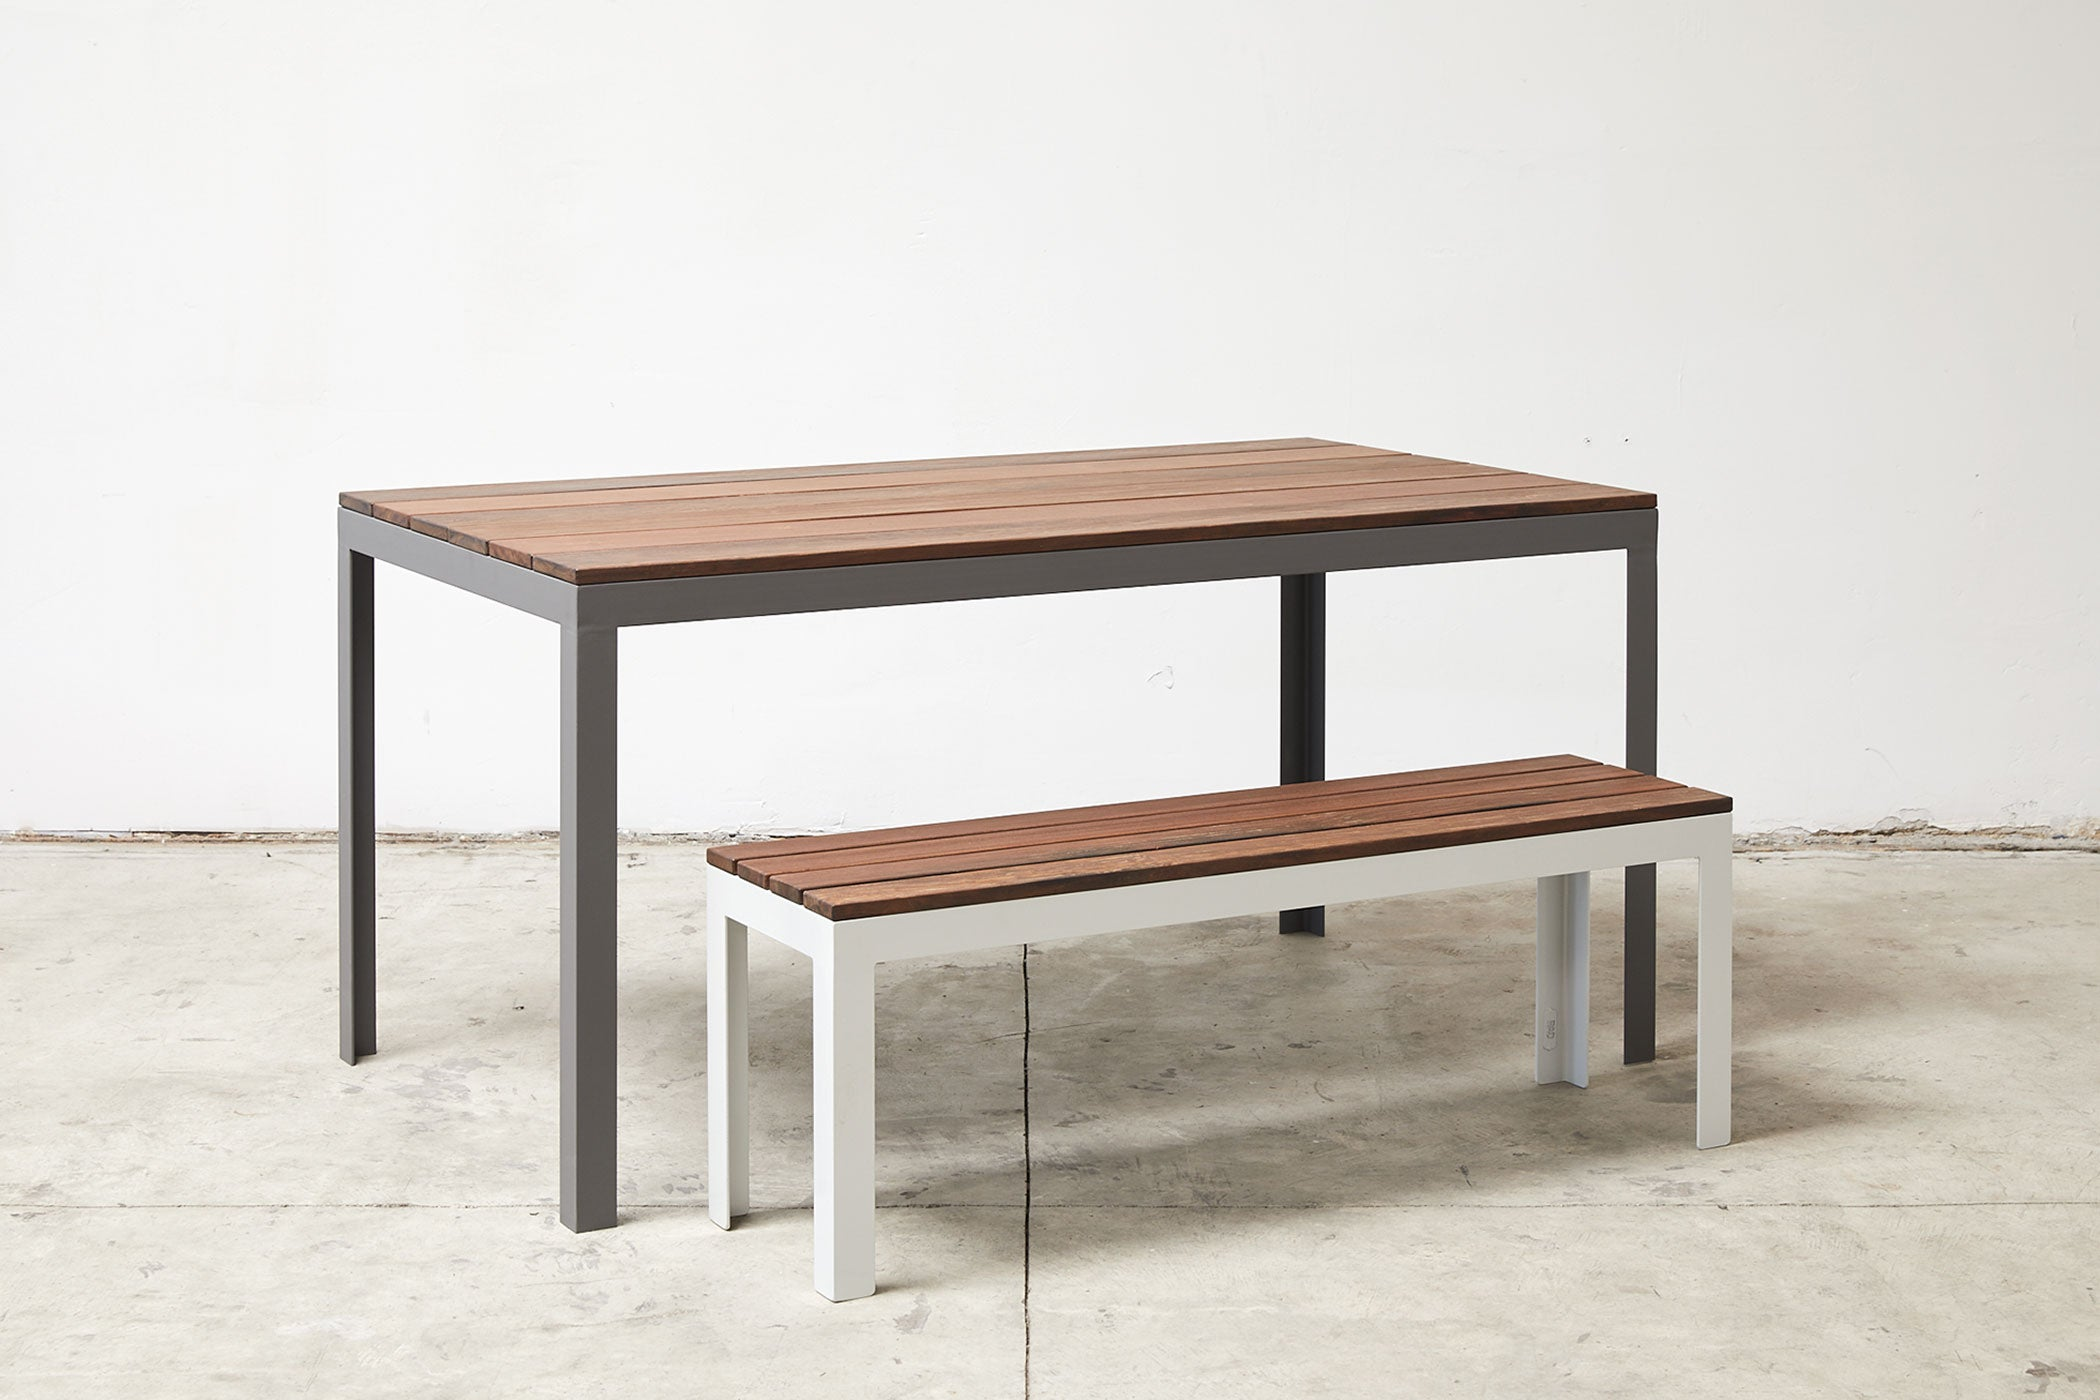 RAD Furniture's Slatted Wood Bench with Wood-top Dining Table